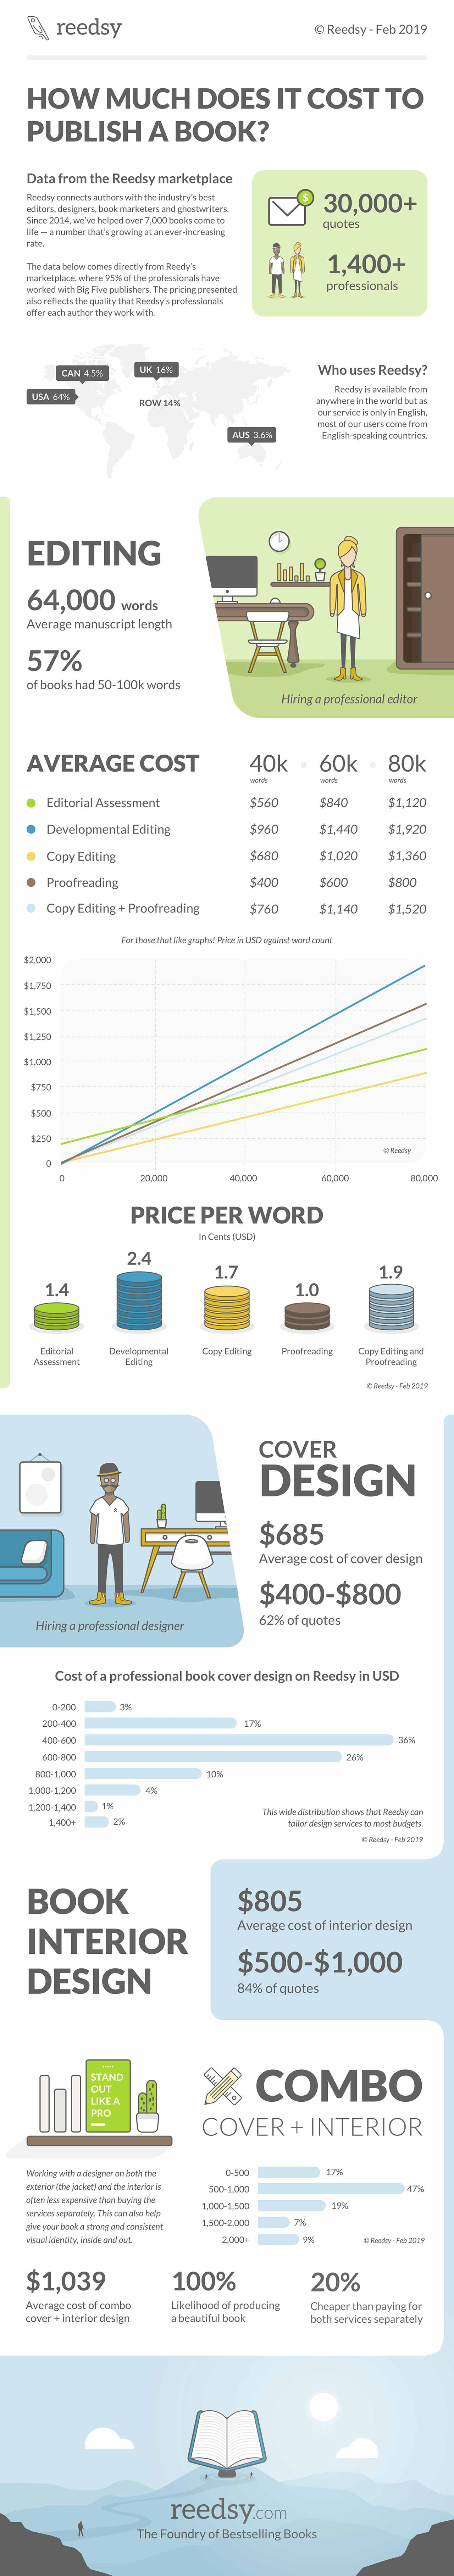 Cost to self-publish a book 2019